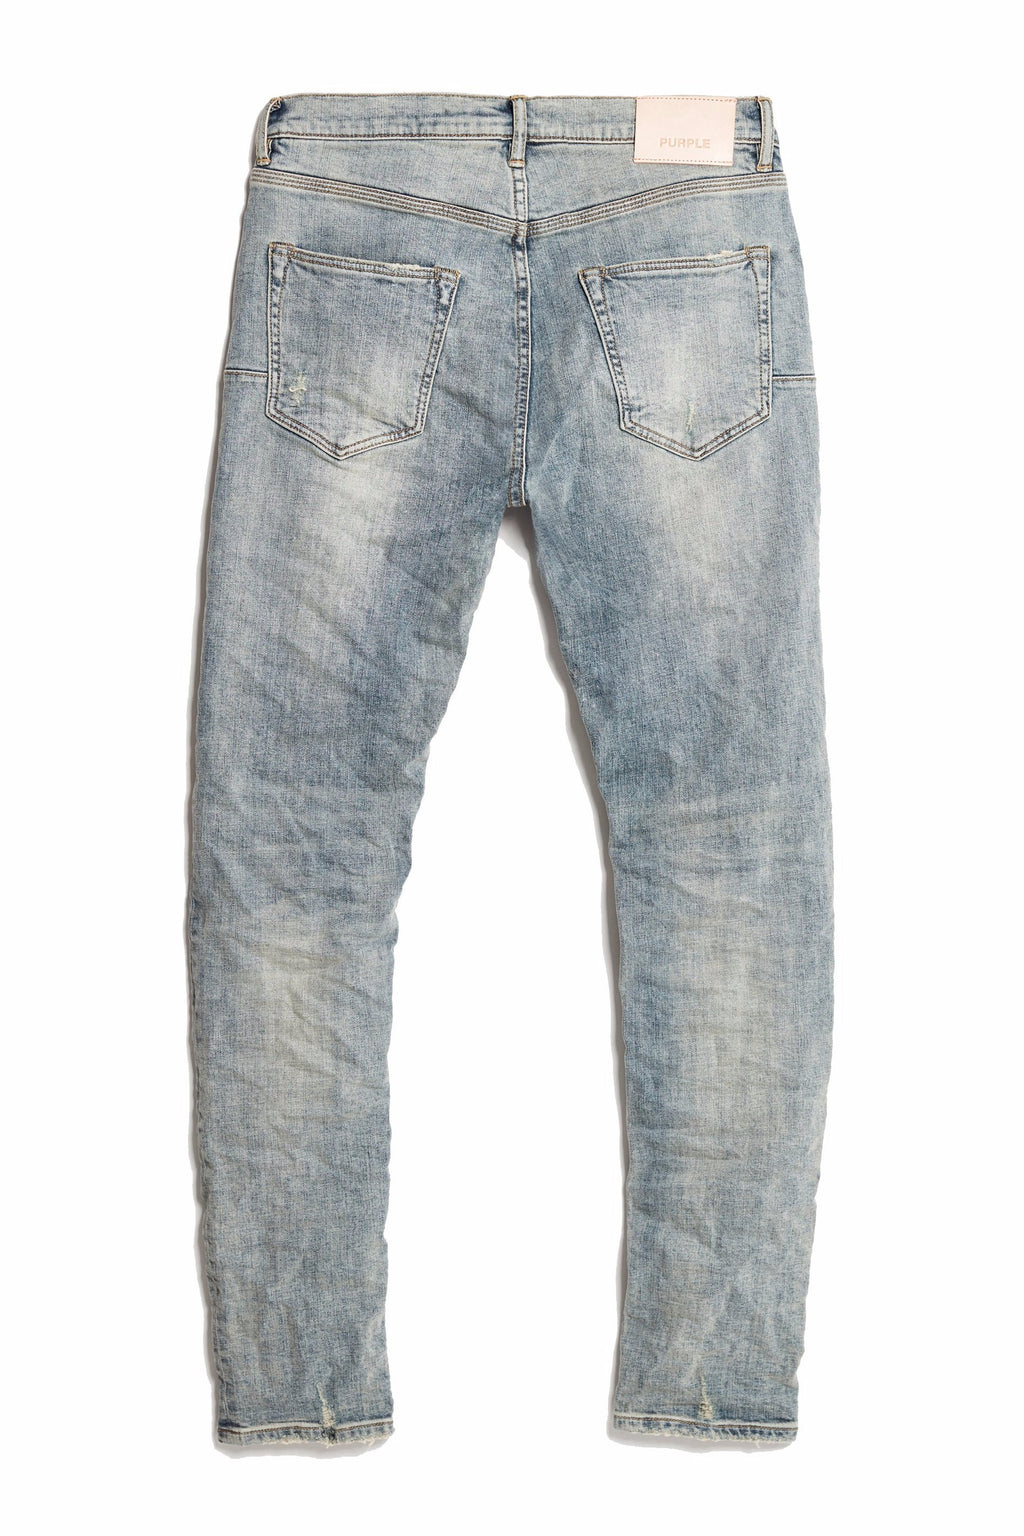 P001 LOW RISE WITH SLIM LEG - LIGHT INDIGO REPAIR